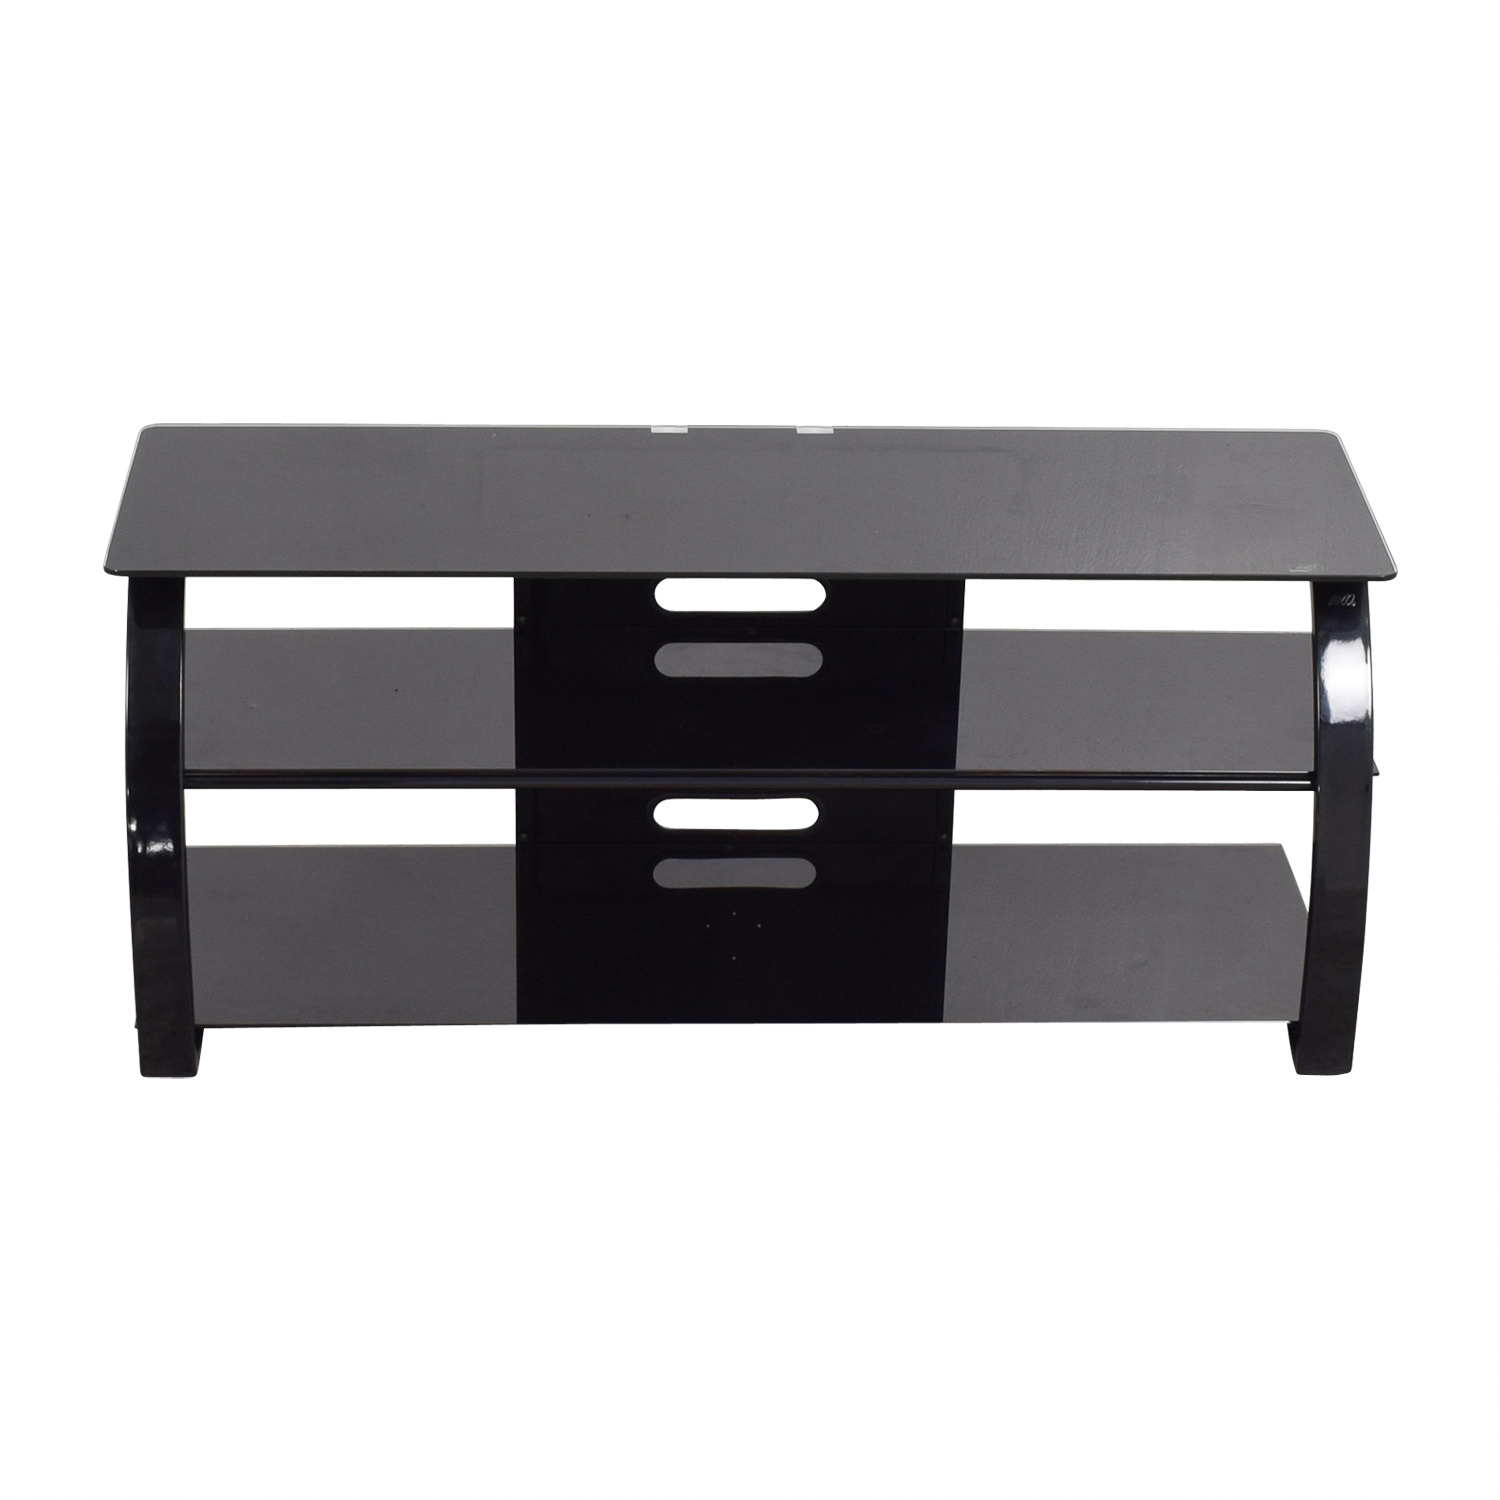 Bello Bello TV Stand on sale